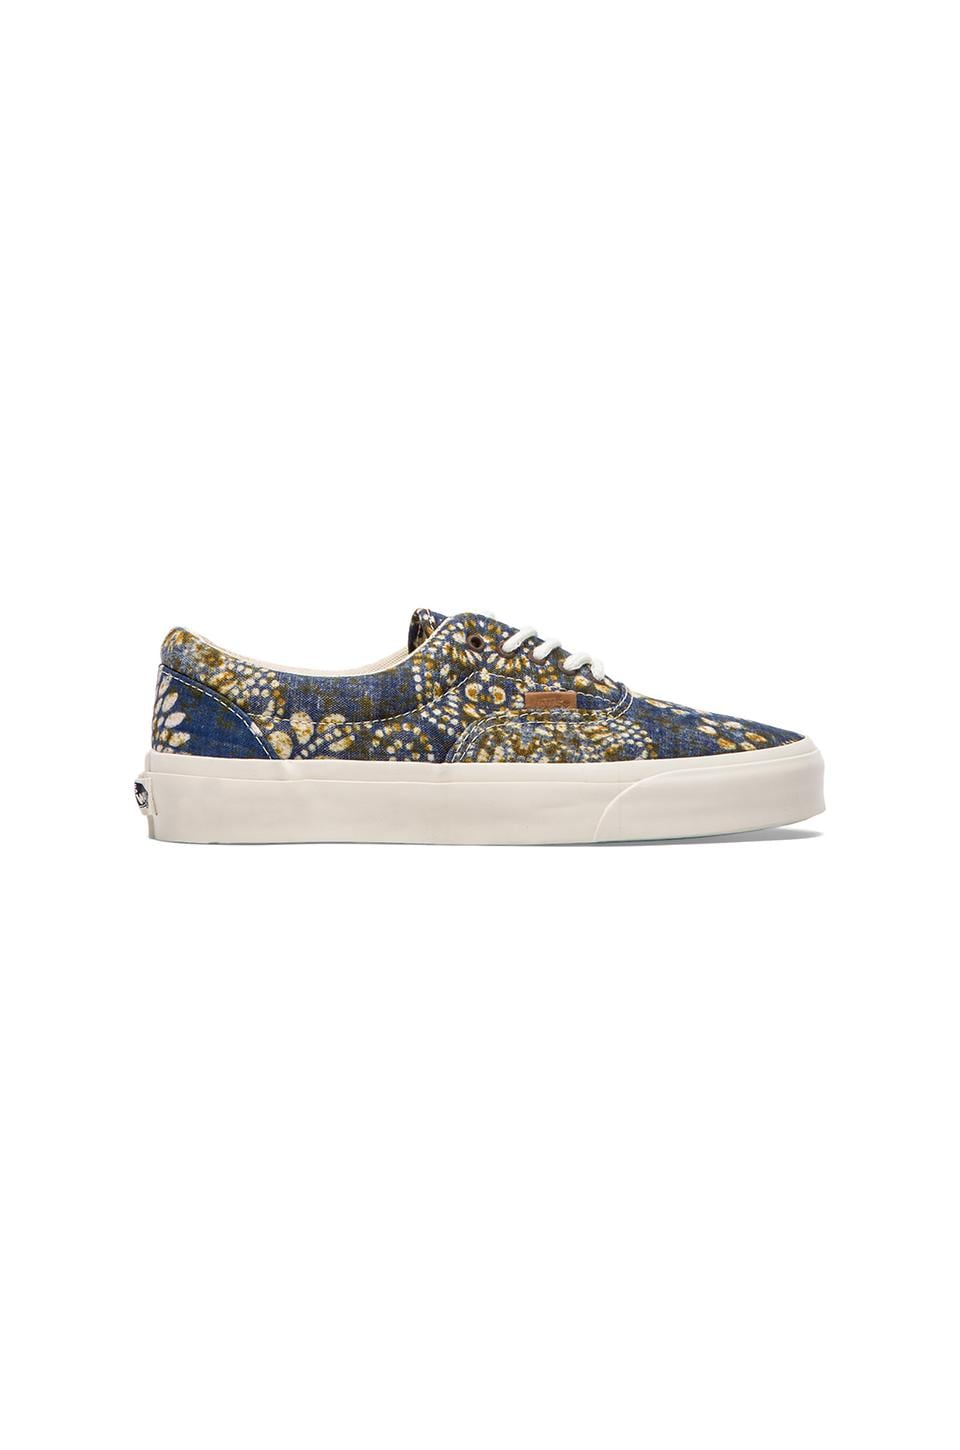 Vans California Era Batik Indigo in Dress Blues